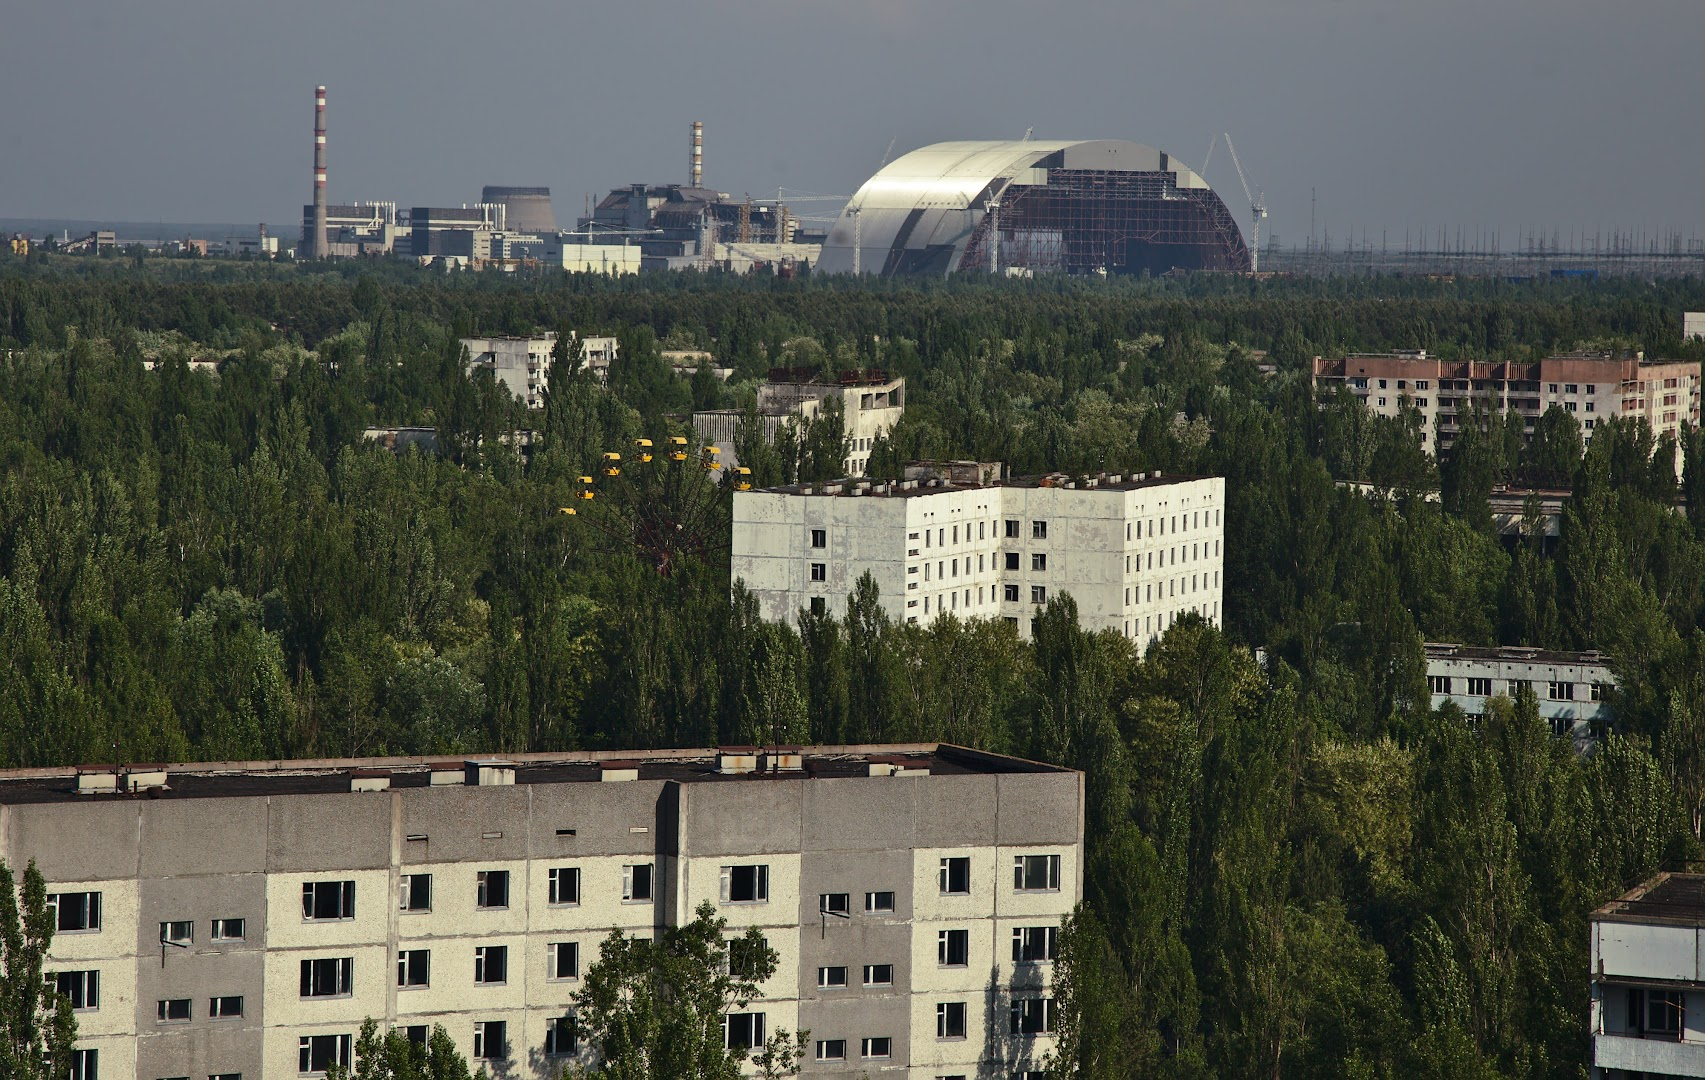 The reactor and the sarcophagus are 9 km away